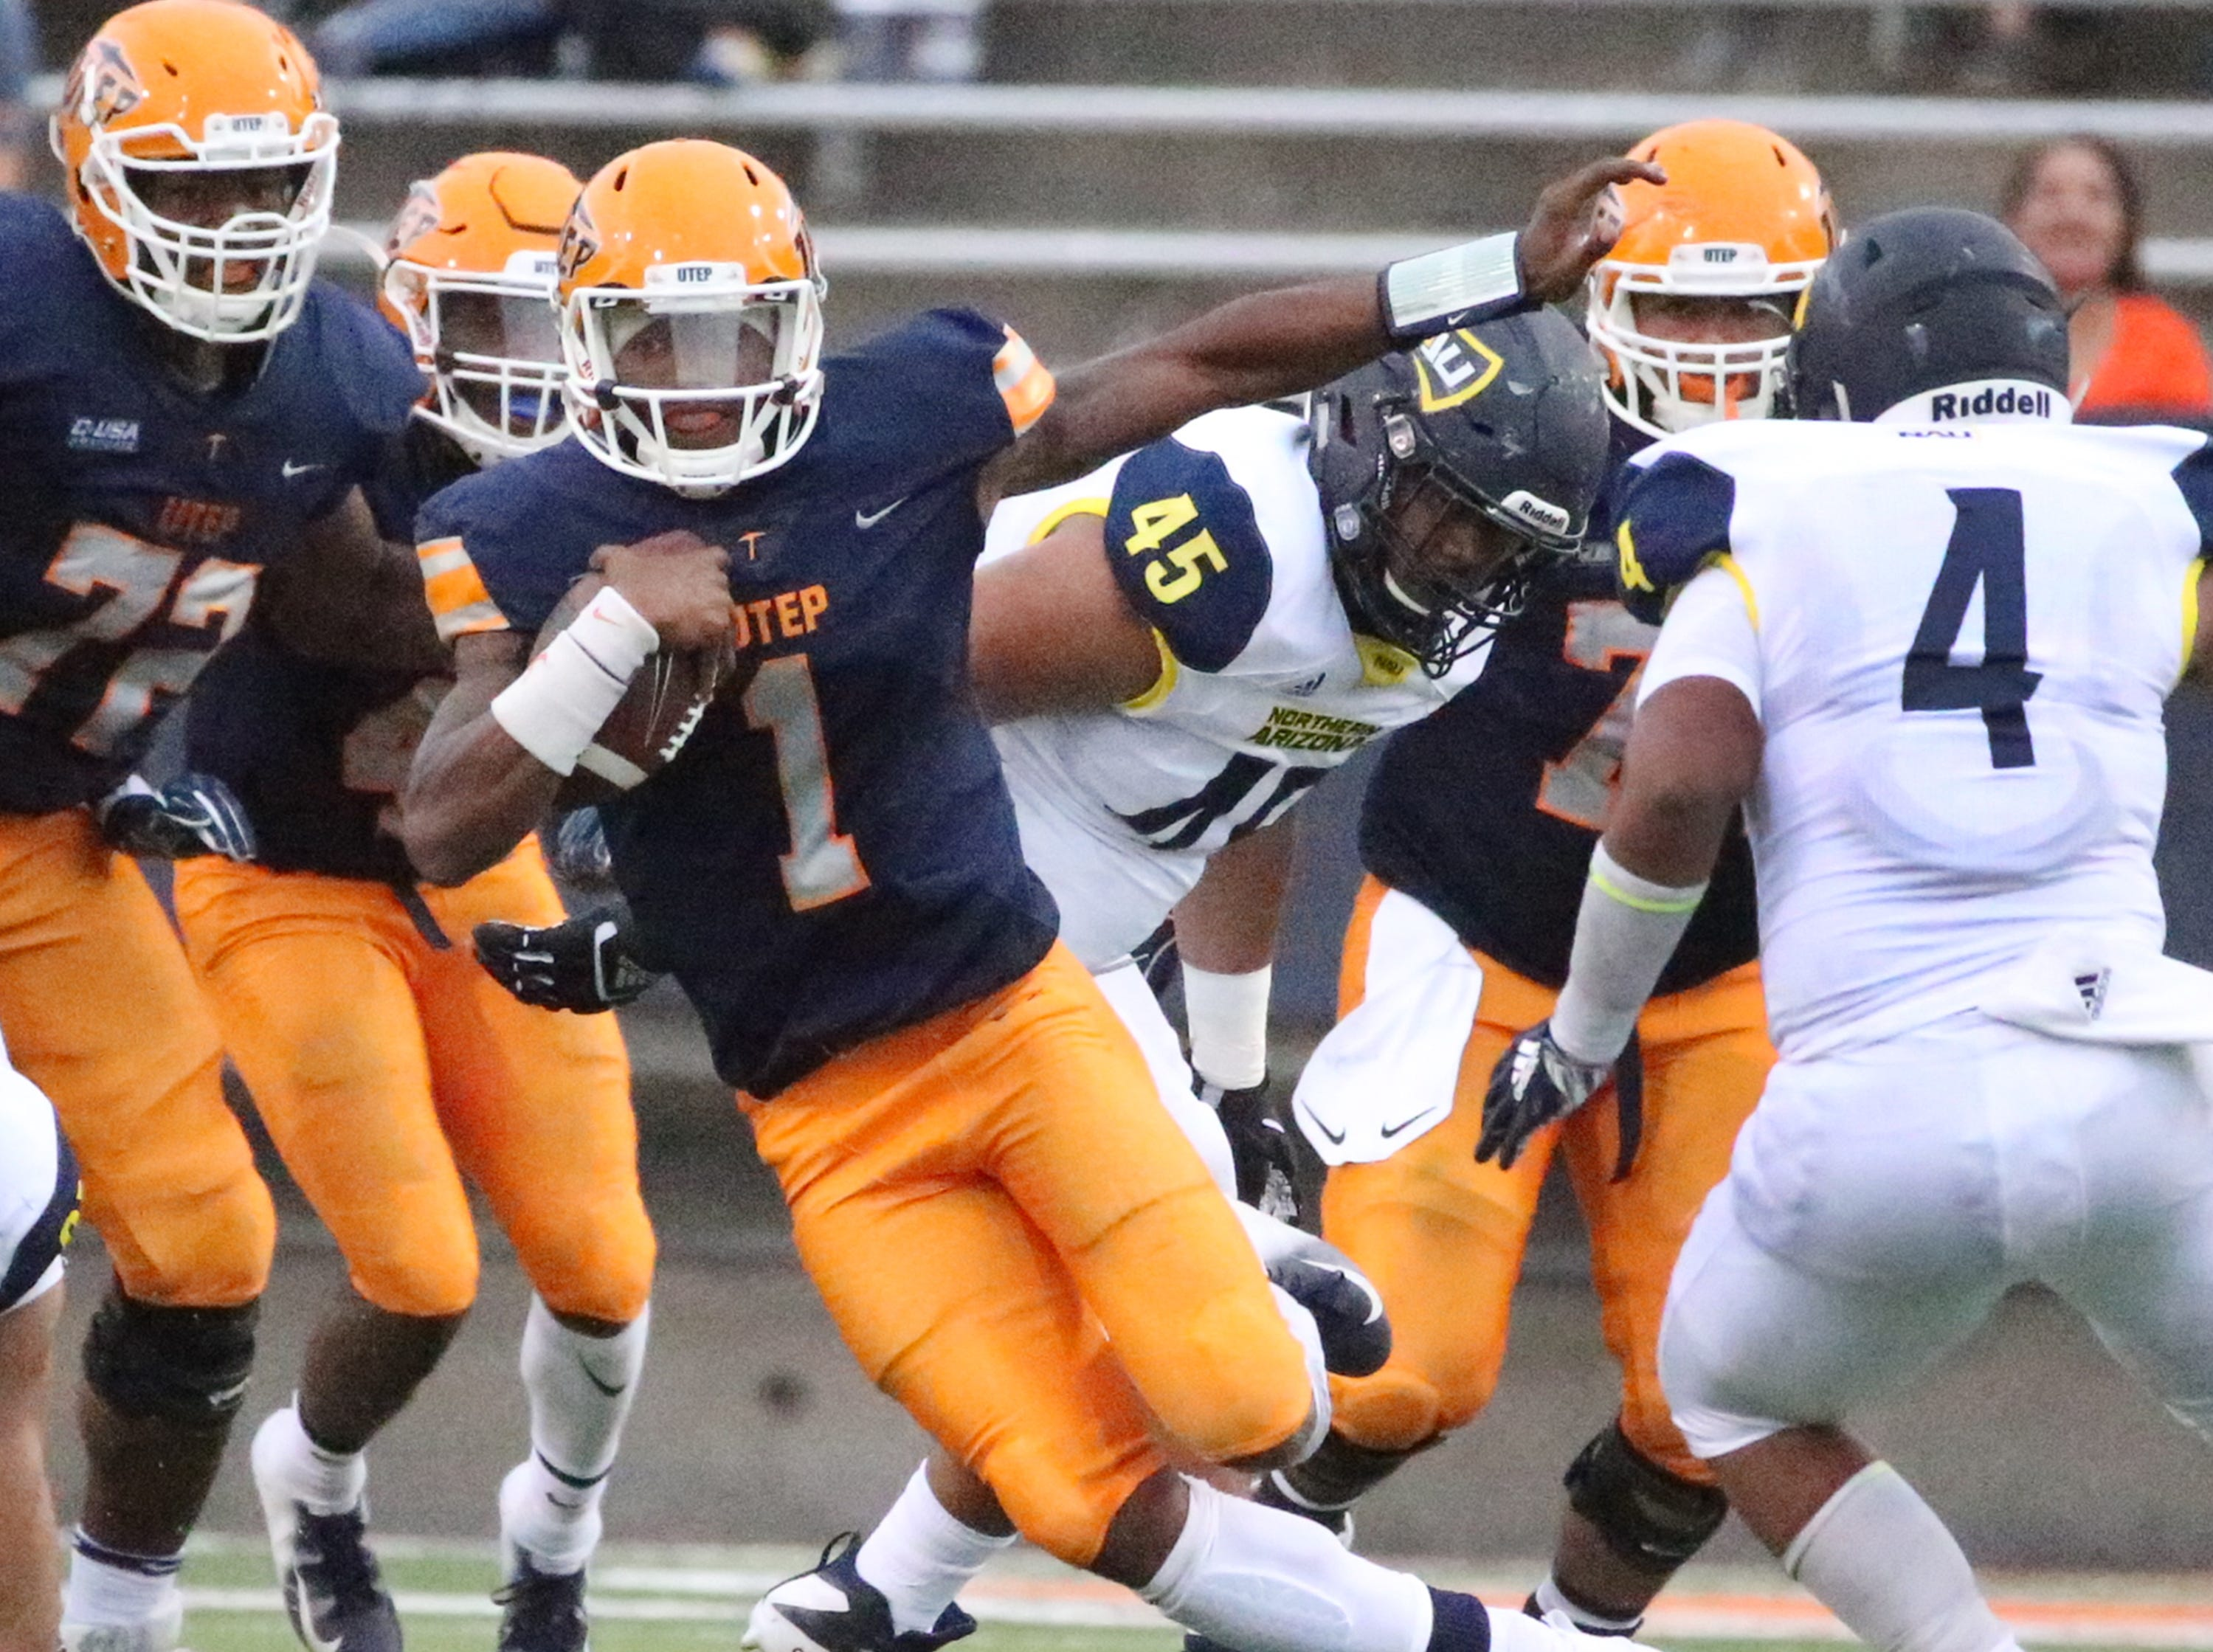 UTEP quarterback Kai Locksley, 1, finds room to run against Northern Arizona Saturday night in the Sun Bowl Stadium.